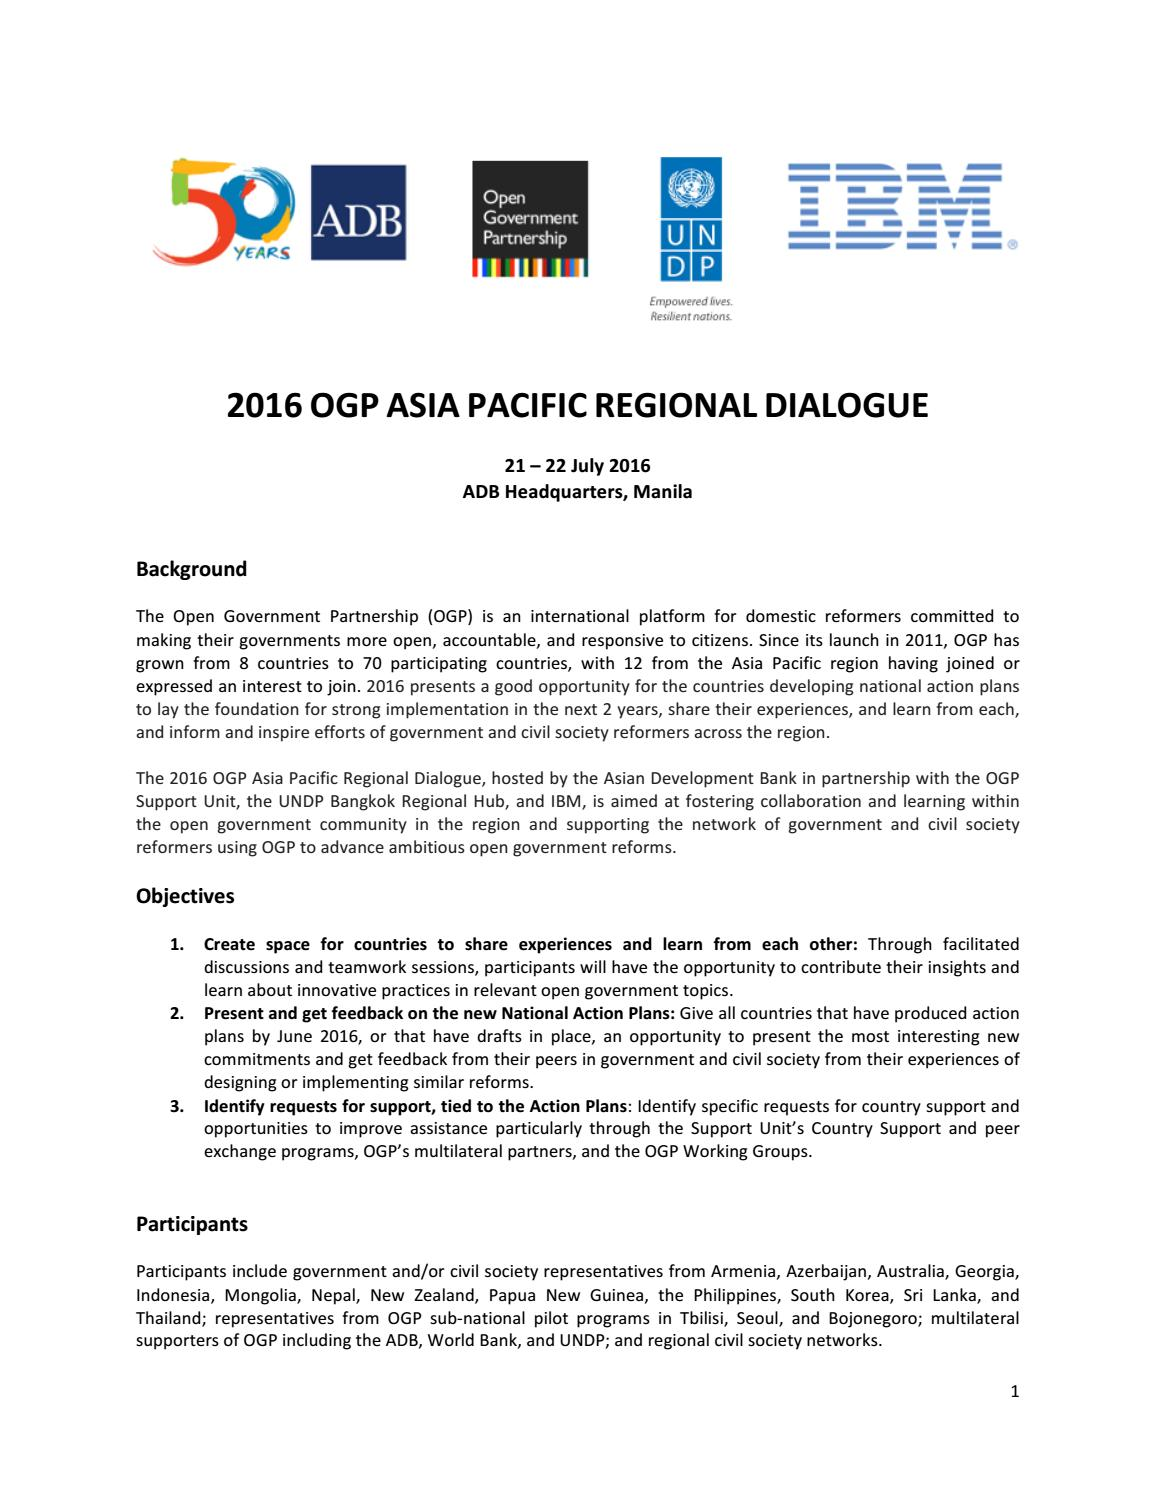 The world bank sl a bangkok - 2016 Ogp Asia Pacific Regional Dialogue Agenda By Undp In Asia And The Pacific Issuu